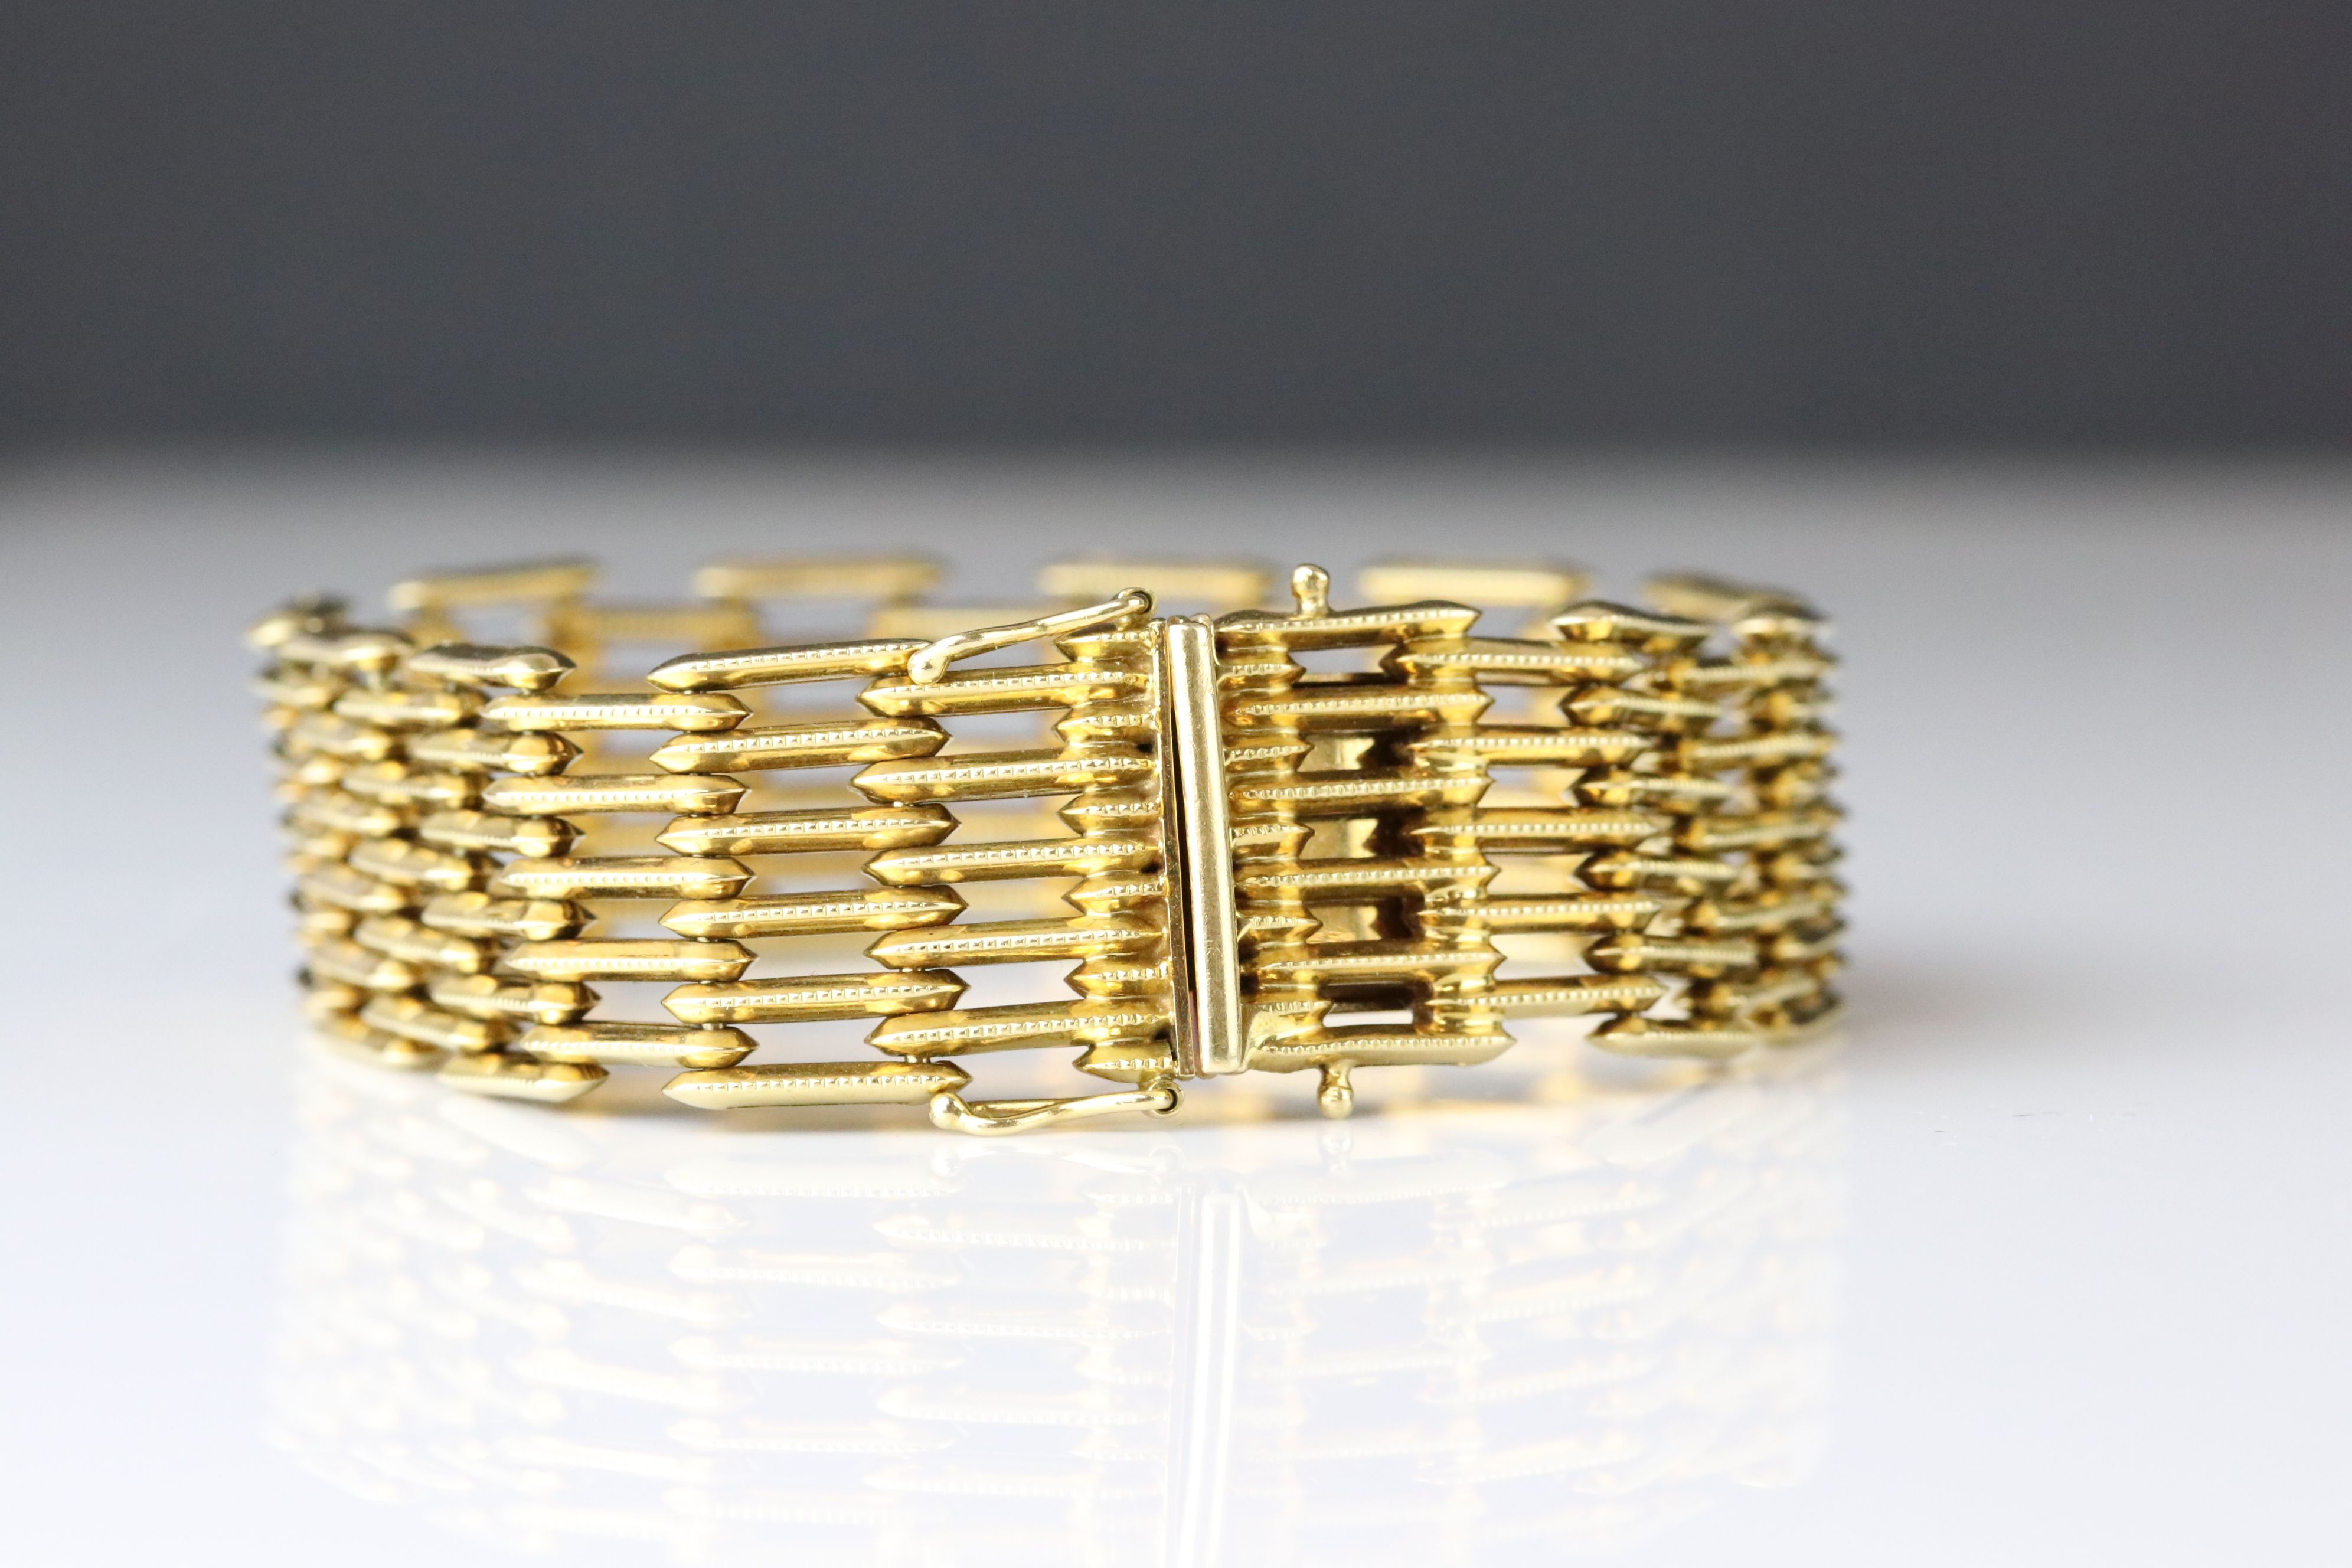 18ct yellow gold gate link style bracelet, tongue and box clasp, length approx 19cm - Image 2 of 5